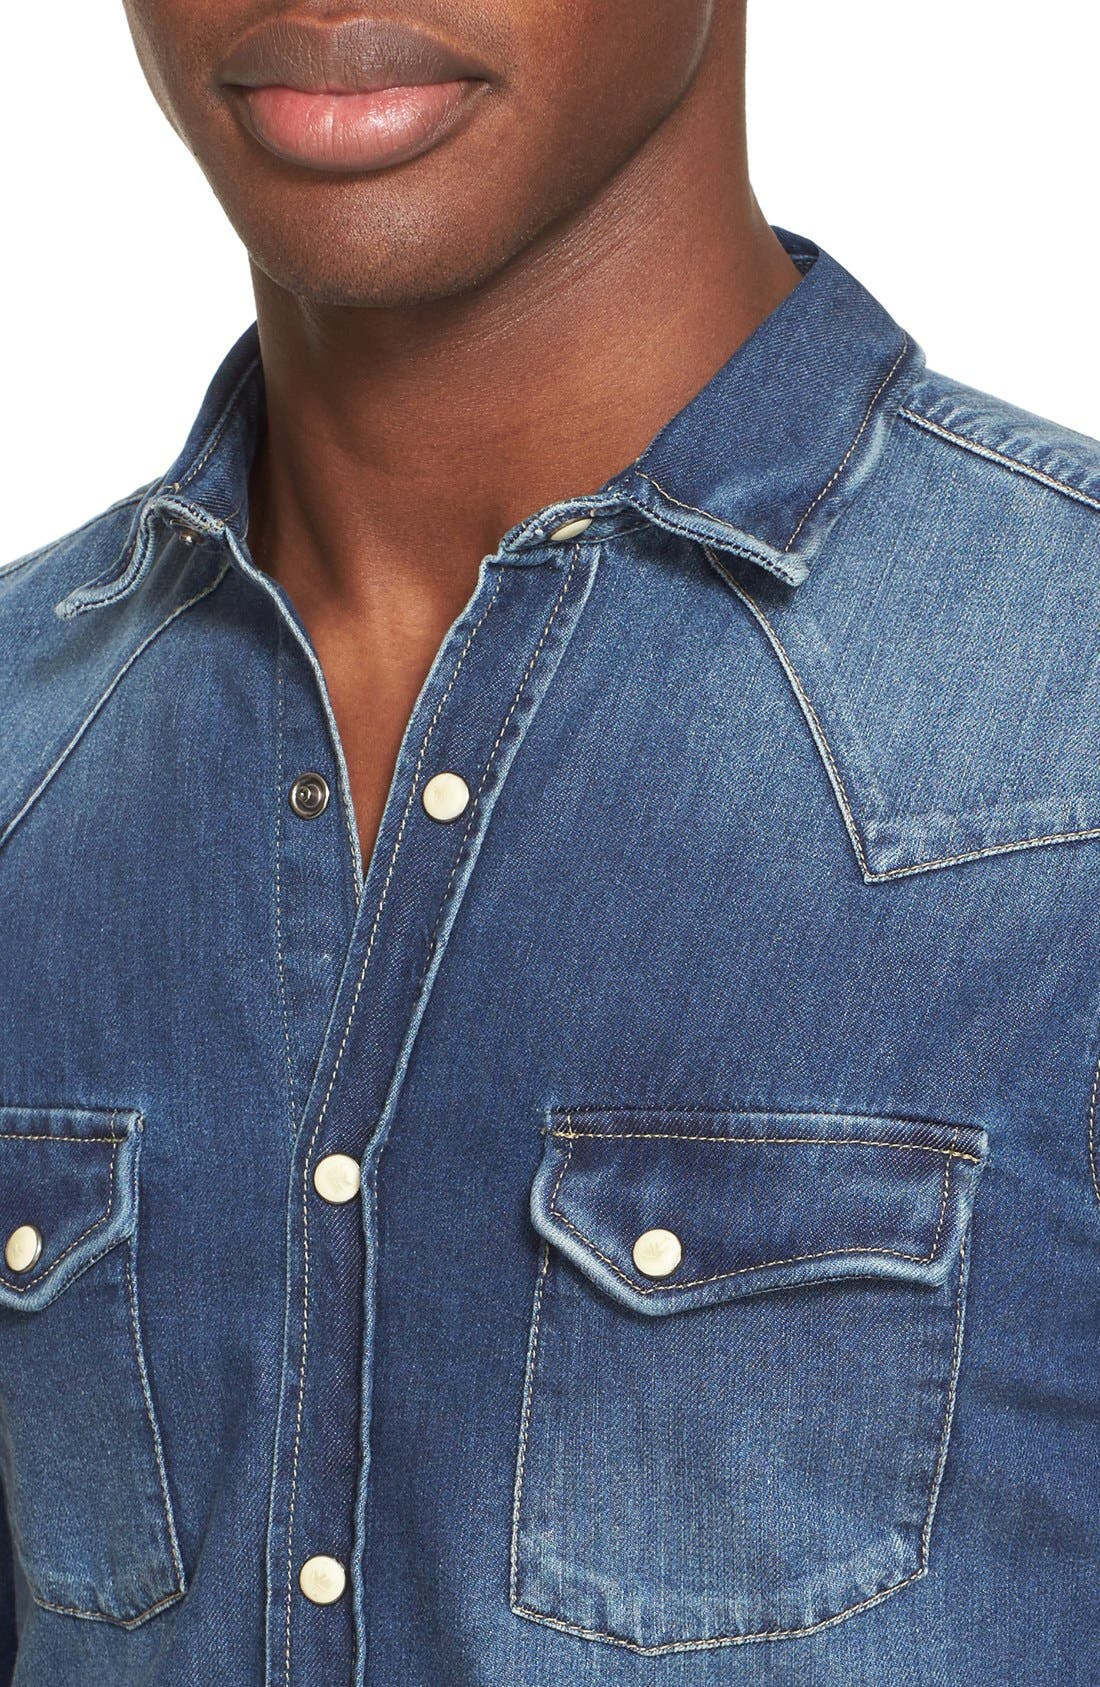 Trim Fit Washed Denim Western Shirt,                             Alternate thumbnail 3, color,                             BLUE